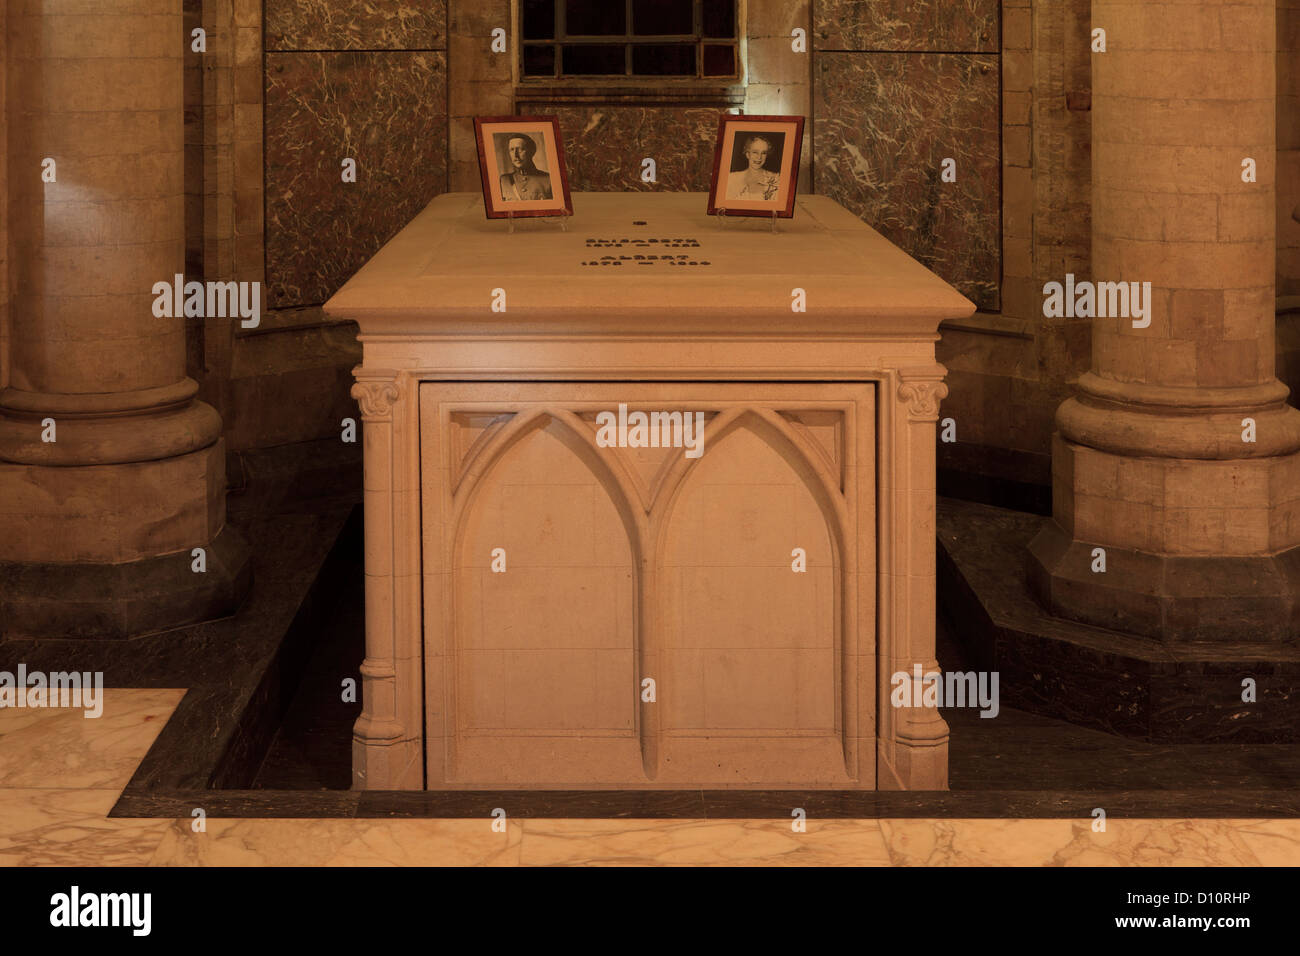 Grave of King Albert I and Queen Elisabeth at the Royal Crypt in Laeken, Belgium - Stock Image